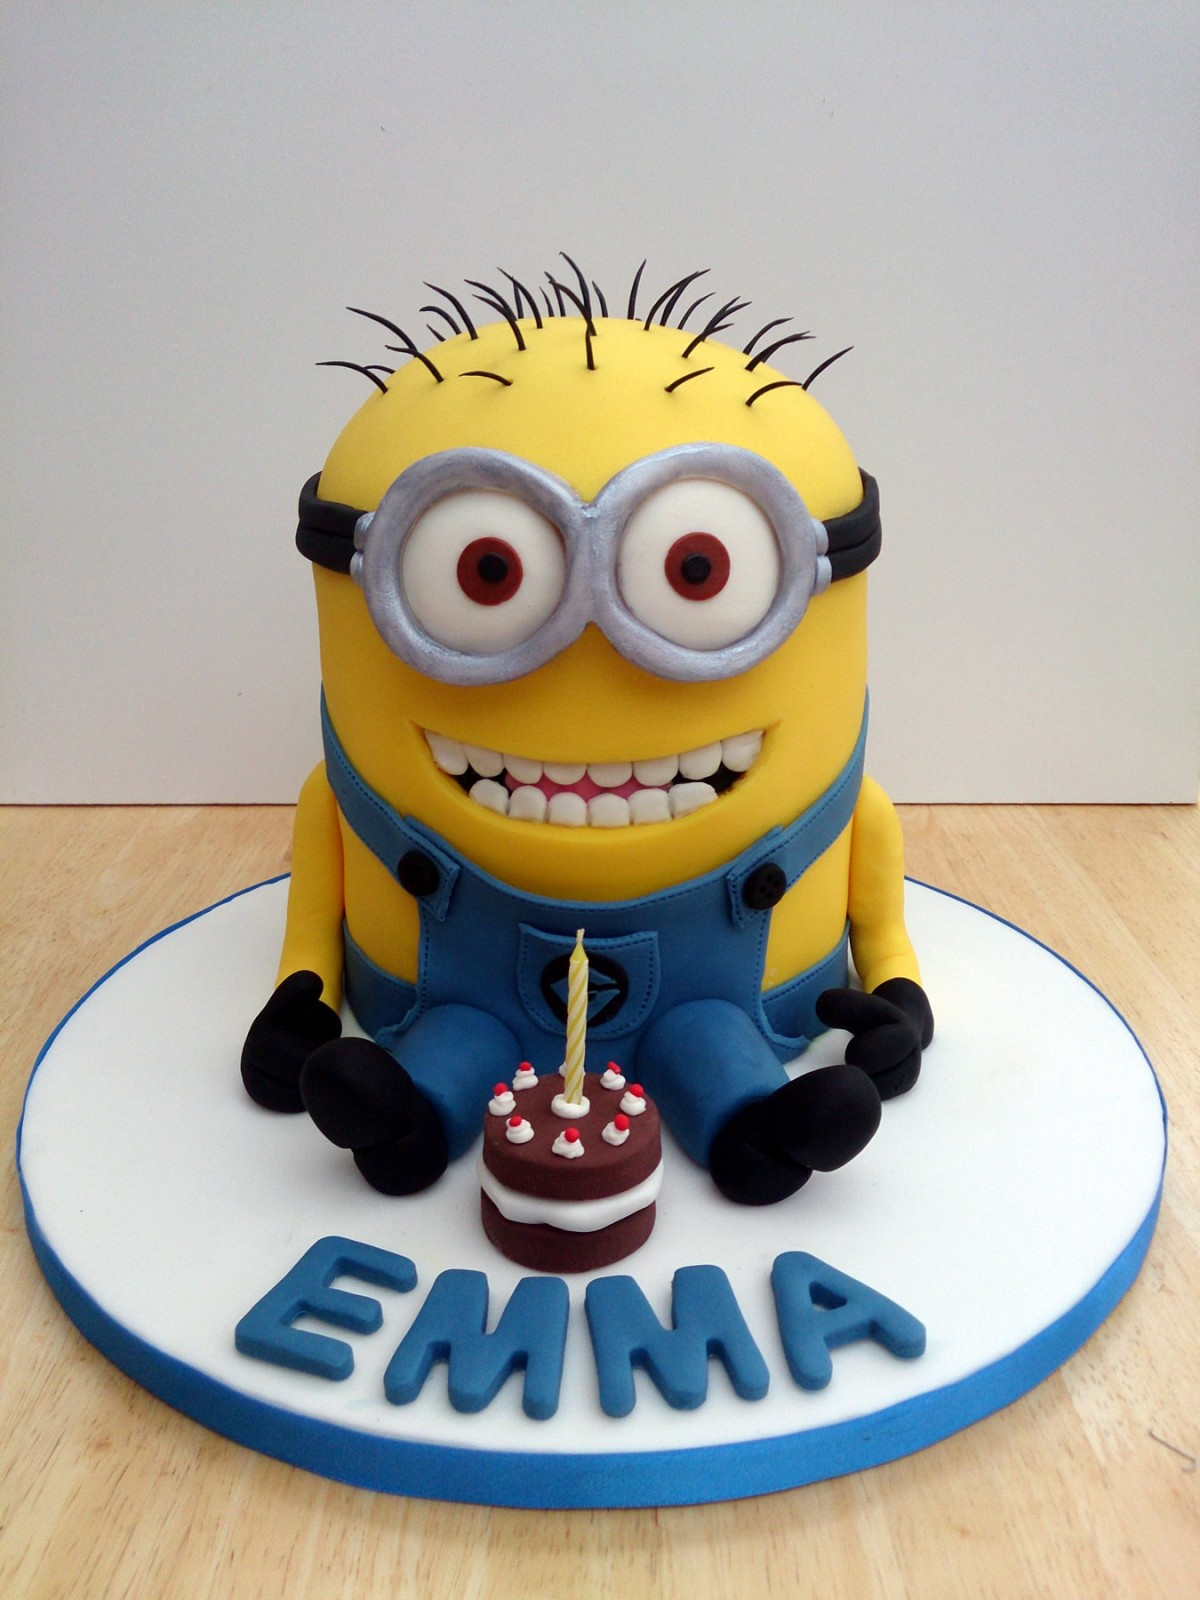 Despicable Me Minion With Teeth Novelty Birthday Cake Susies Cakes